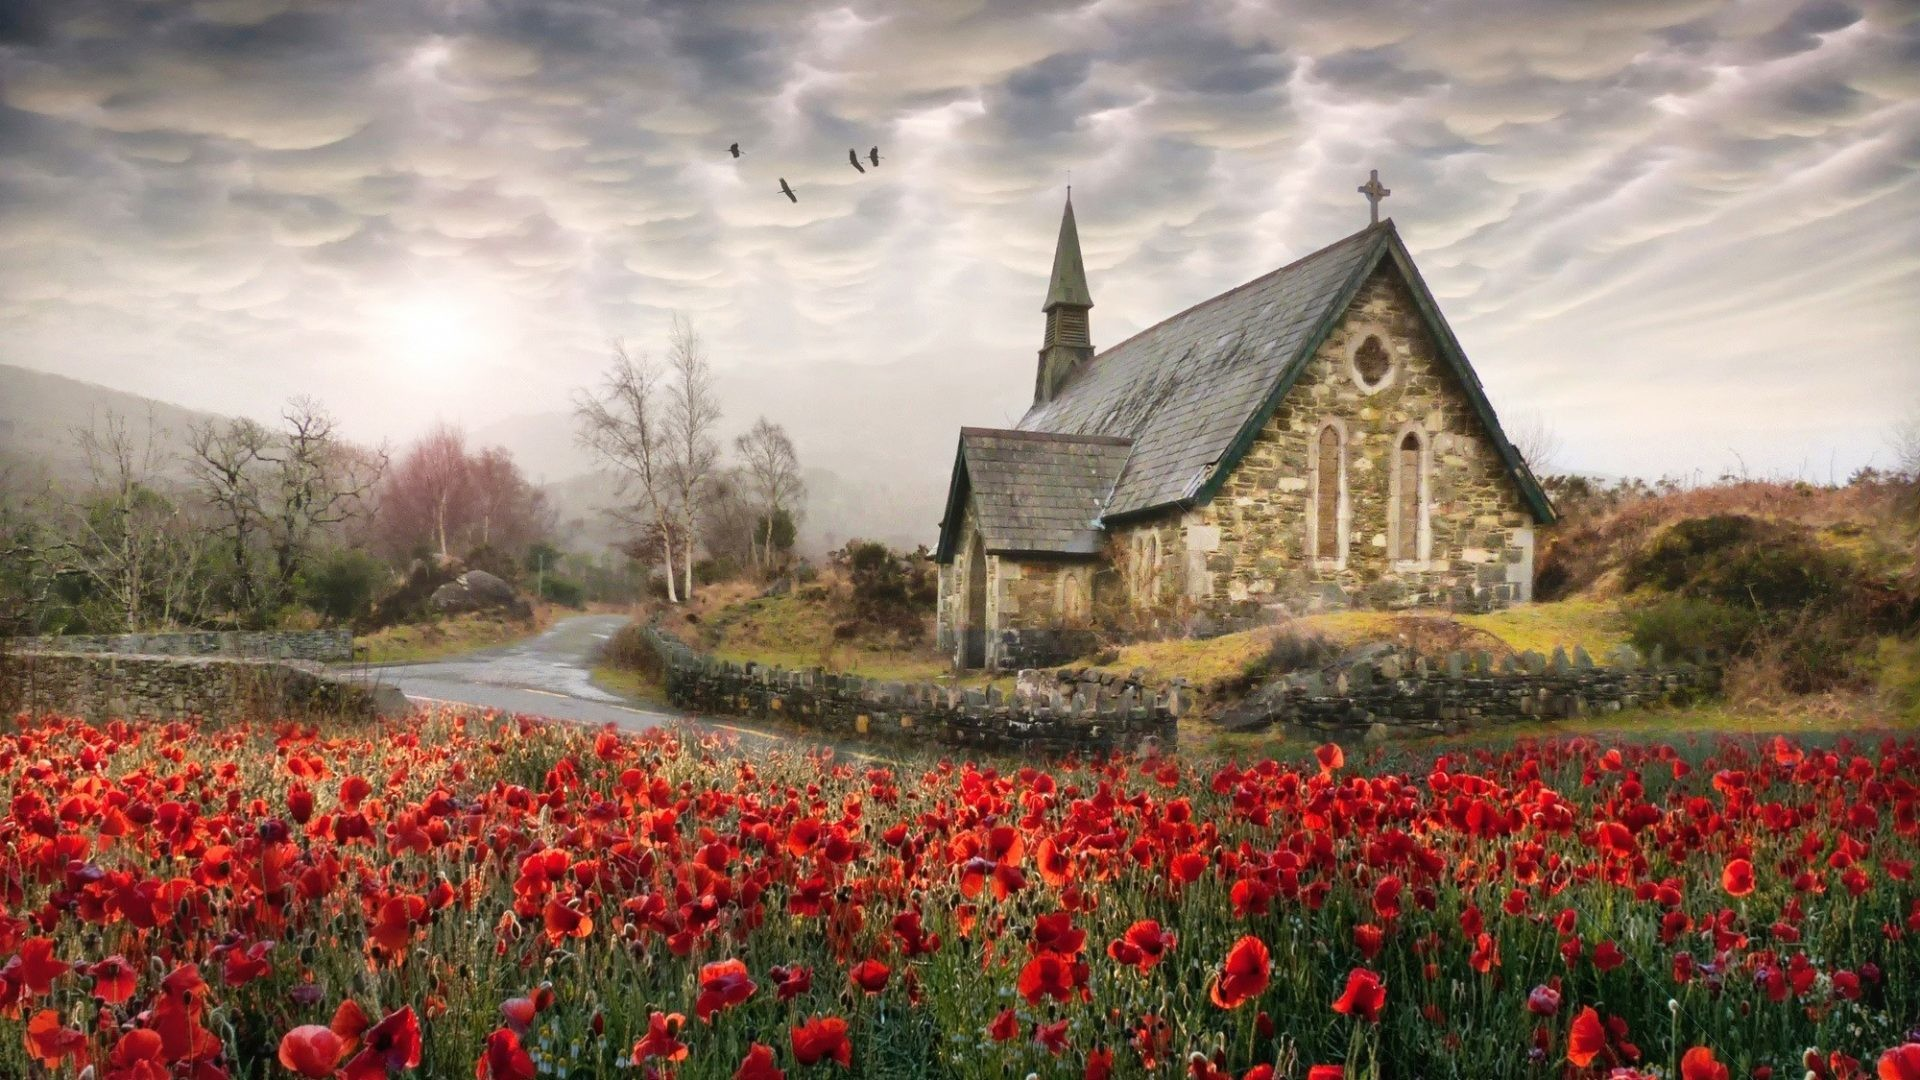 1920x1080 Ireland Tag - Road Field Church Country Ireland Clouds Poppies Blossoms  Amazing Flower Desktop Wallpapers for